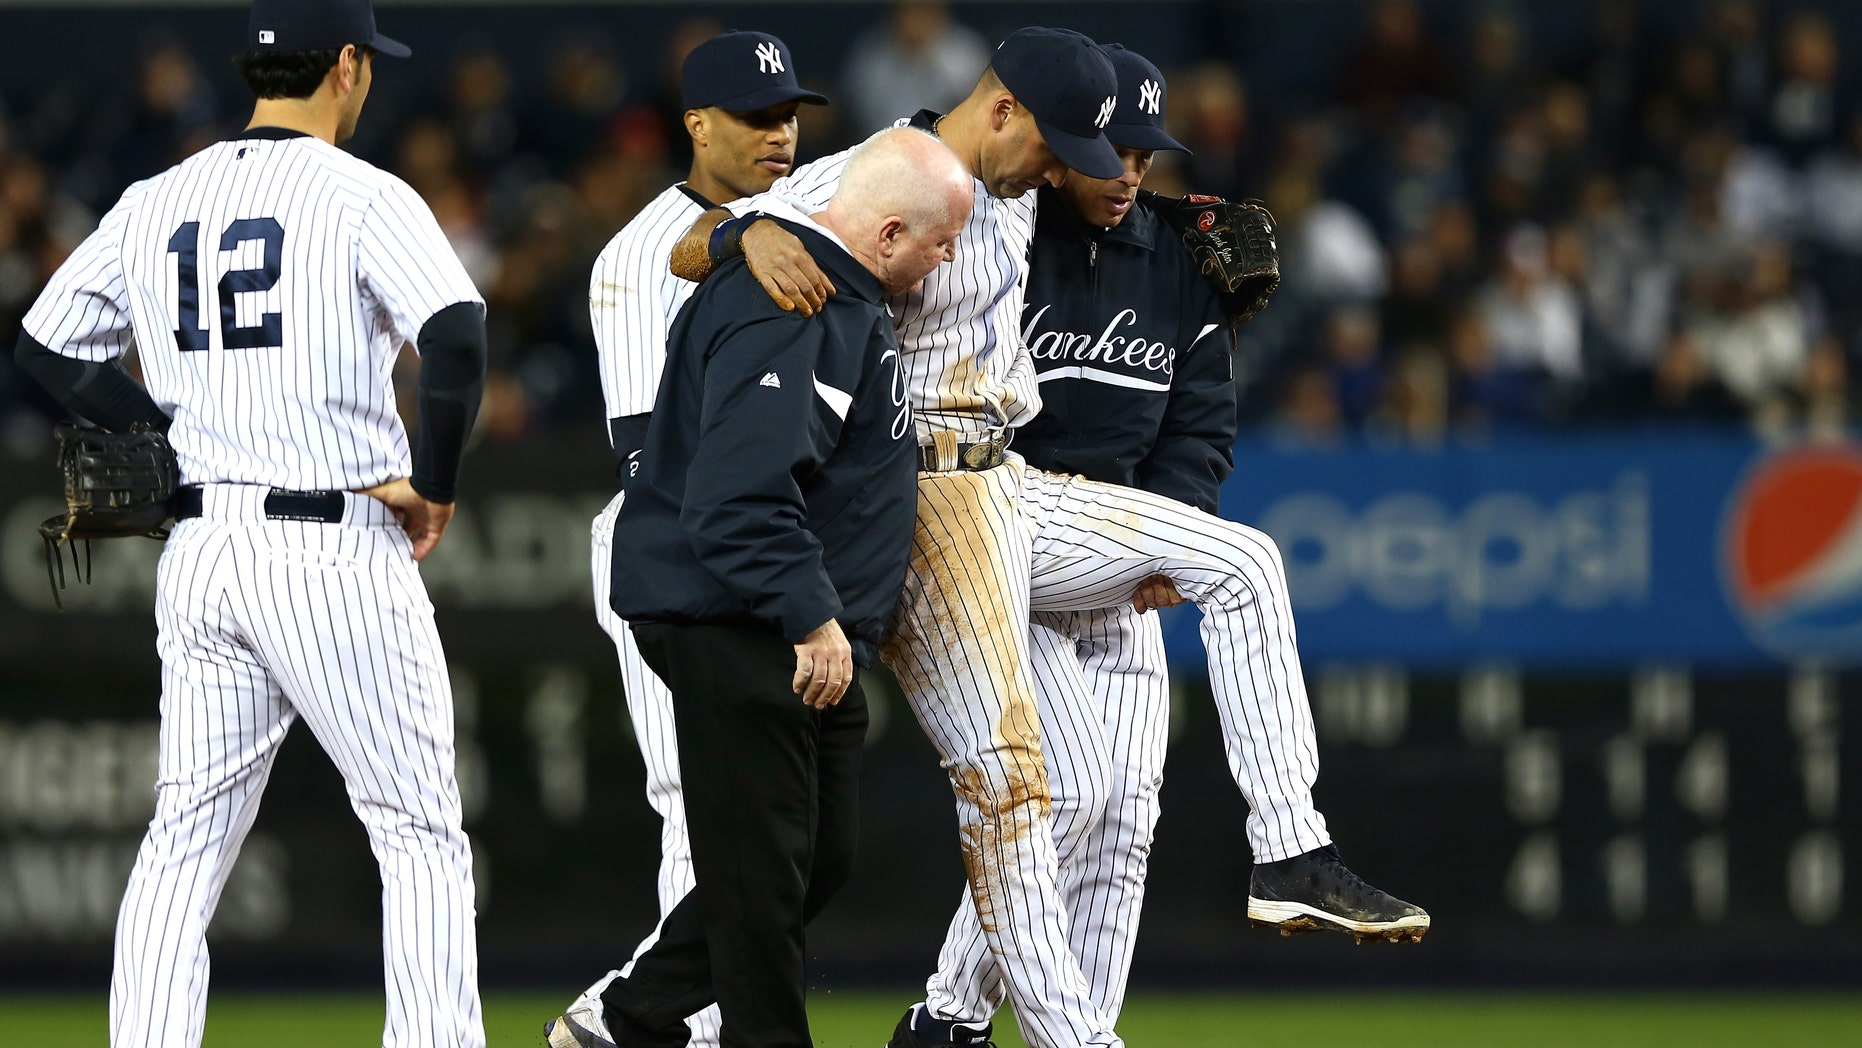 NEW YORK, NY - OCTOBER 13:  Derek Jeter #2 of the New York Yankees is carried off of the field by trainer Steve Donohue and manager Joe Girardi after Jeter injured his leg in the top of the 12th inning against the Detroit Tigers during Game One of the American League Championship Series at Yankee Stadium on October 13, 2012 in the Bronx borough of New York City, New York.  (Photo by Elsa/Getty Images)